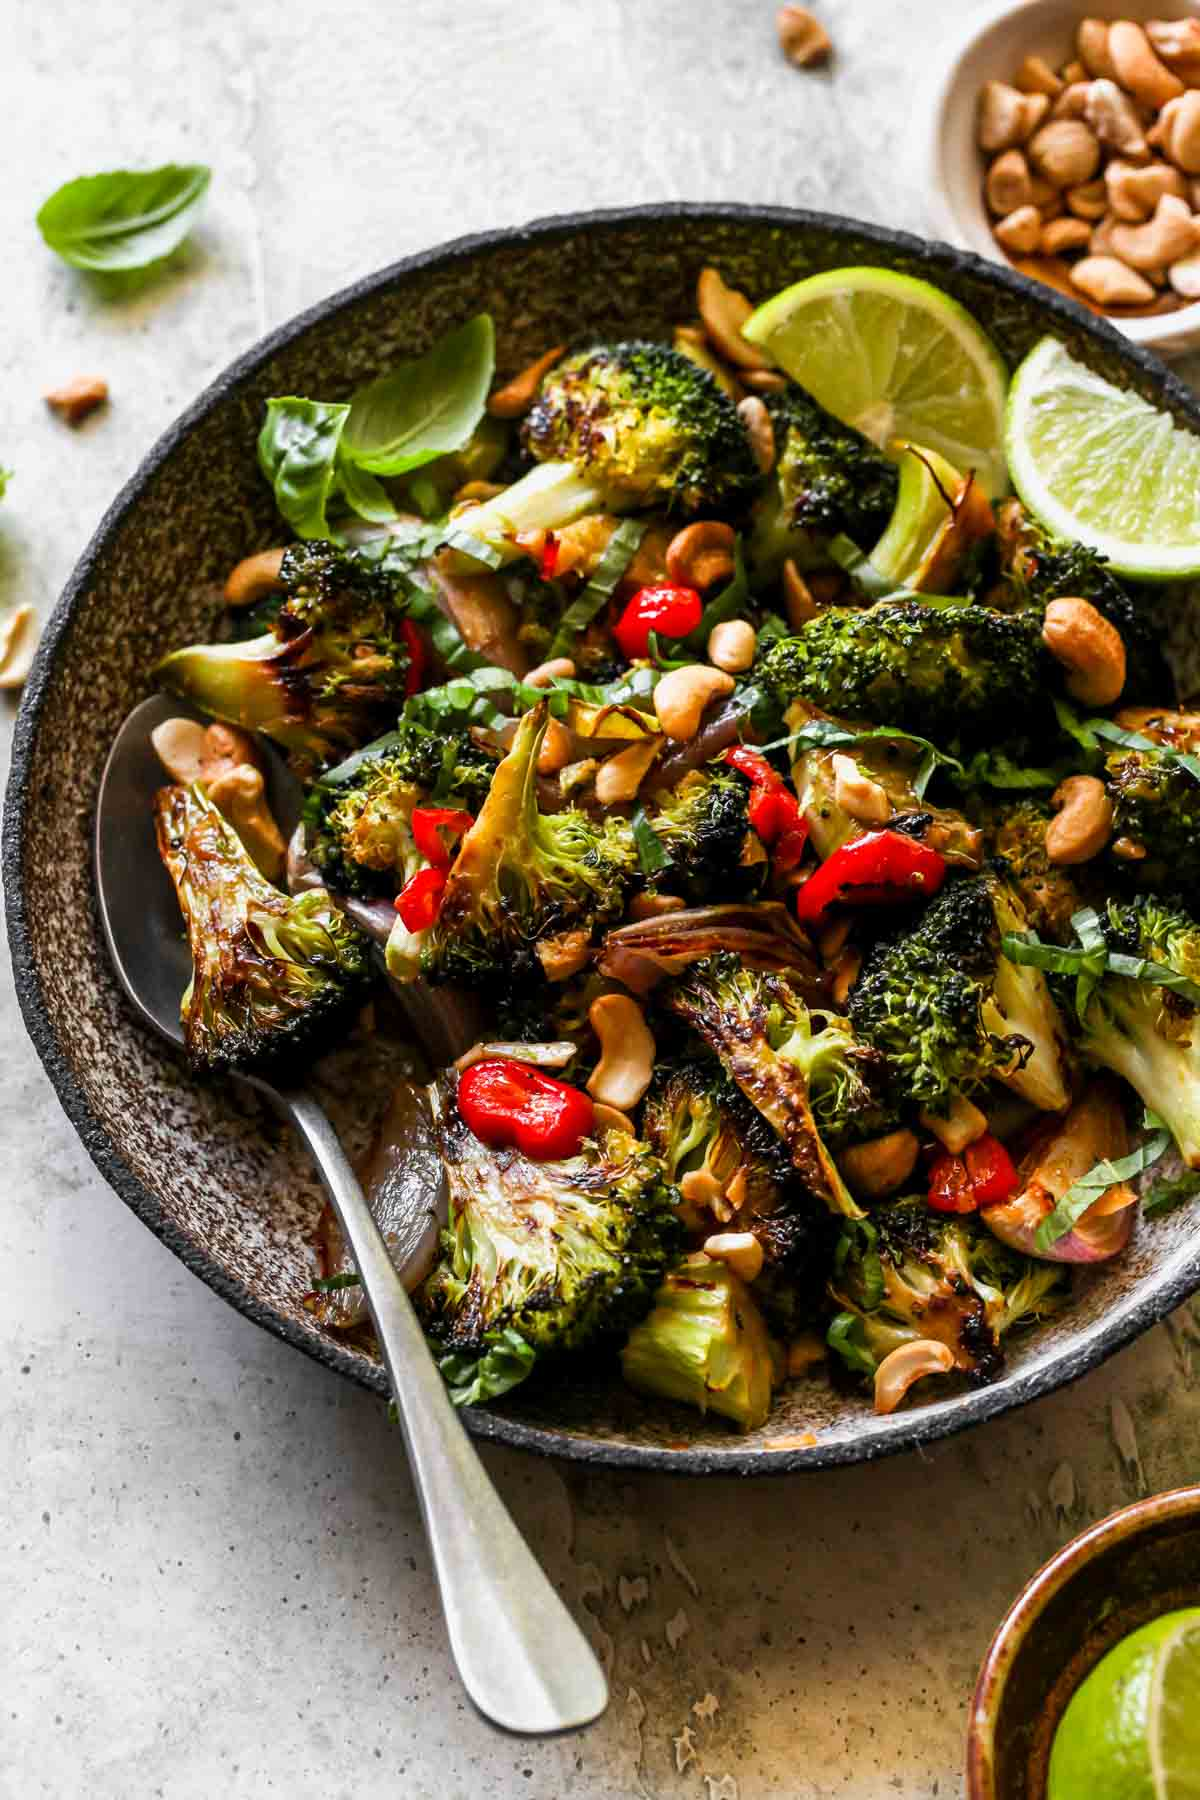 Roasted broccoli with a serving spoon in a gray bowl